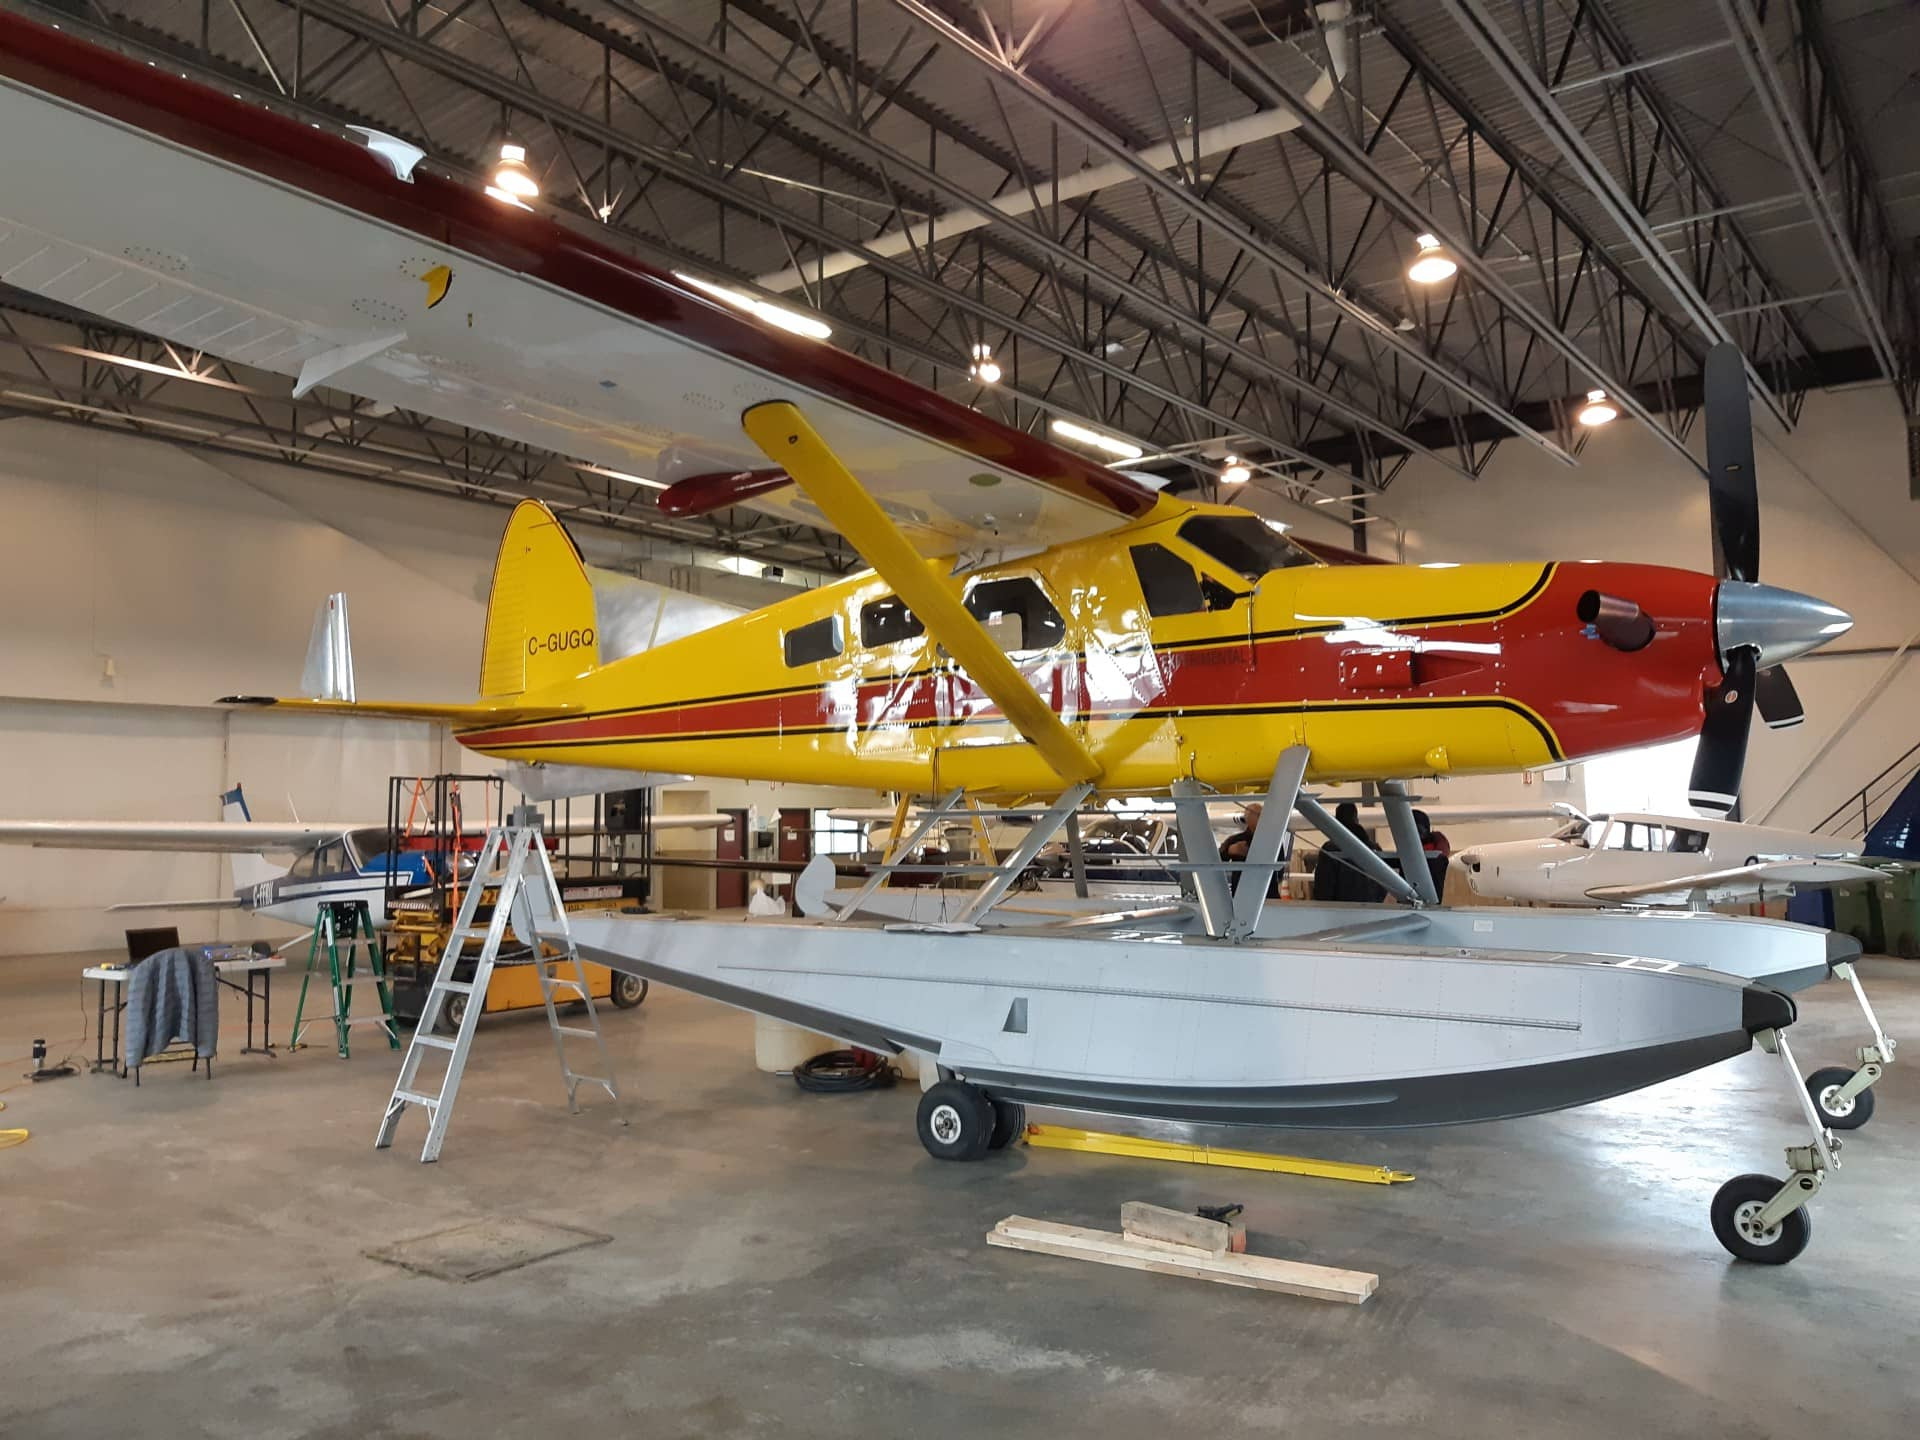 A yellow and red plane inside a garage